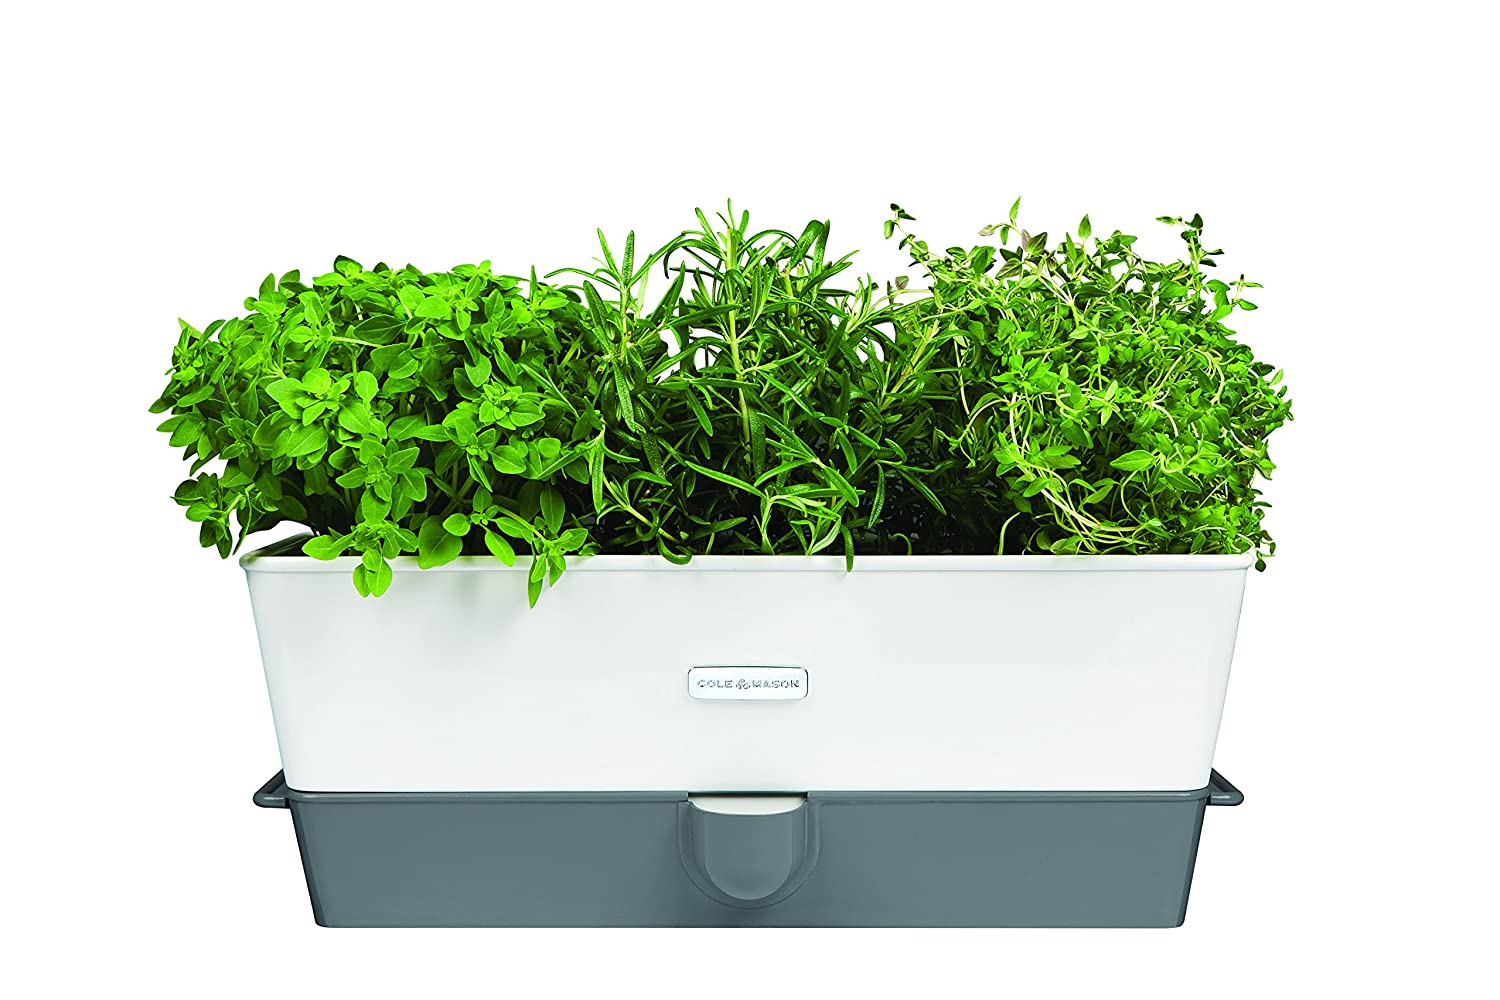 Cole & Mason Fresh Herb Range Self-Watering Potted Herb Keeper, Enamel Coated Steel, White and Grey, Triple DKB HOUSEHOLD DISTRIBUTION AG H105349